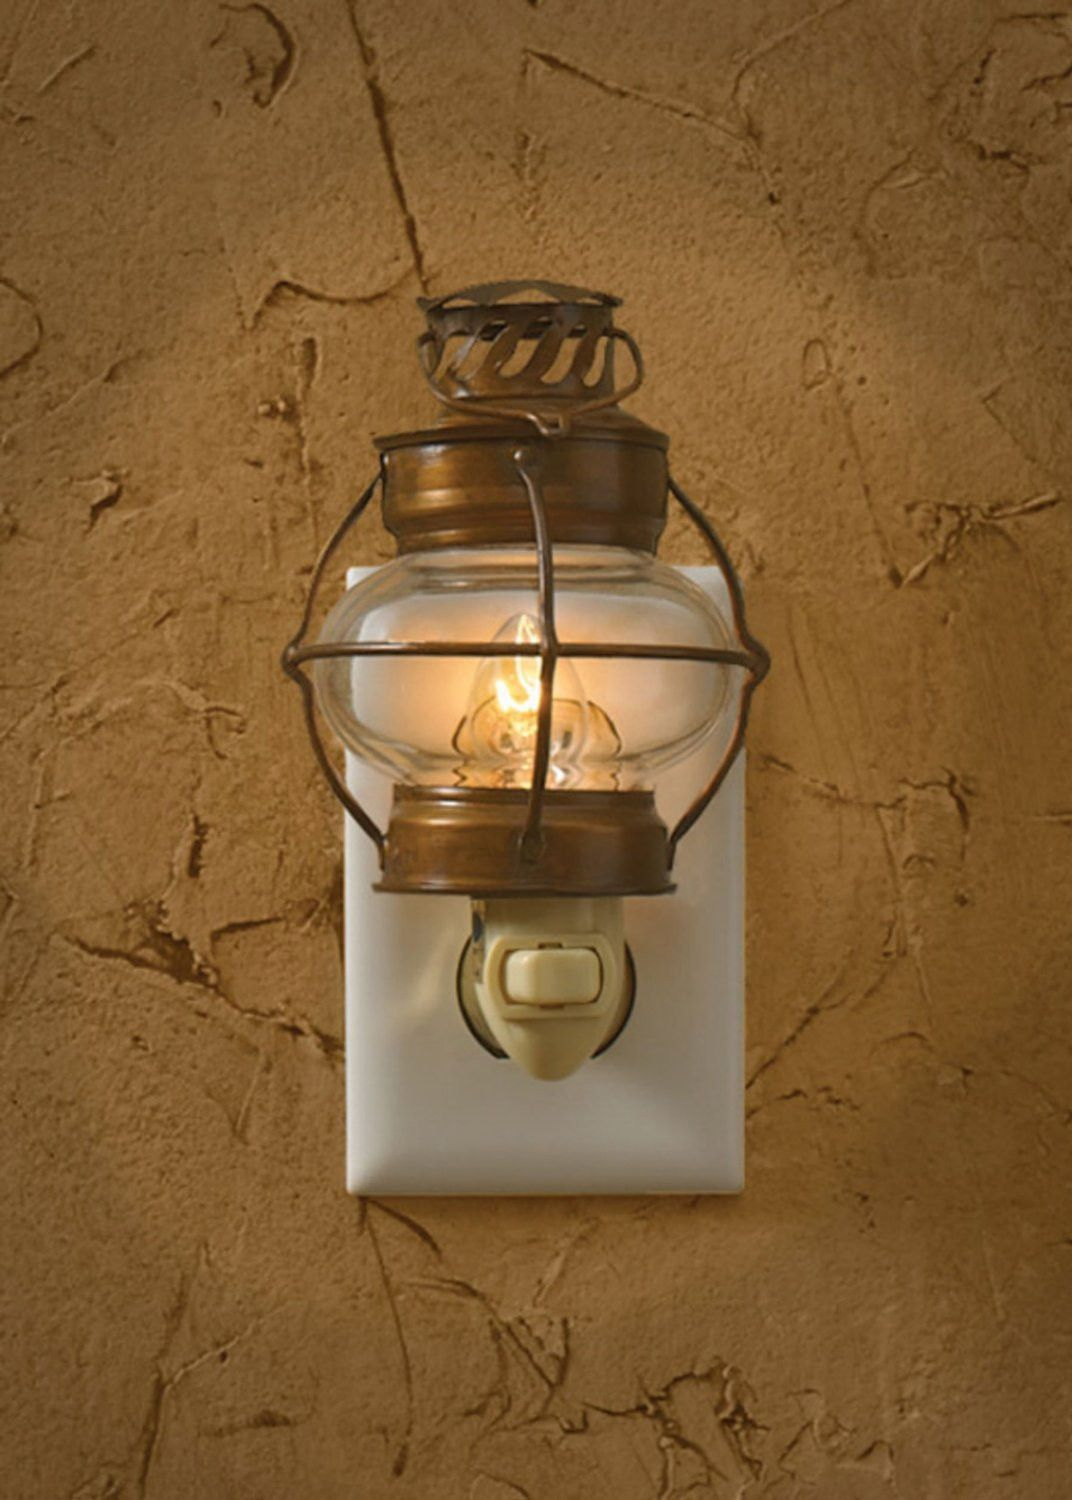 Charming Sea Lantern Night Light Gives Off A Nice Warm Soft - Bathroom light fixture with on off switch for bathroom decor ideas